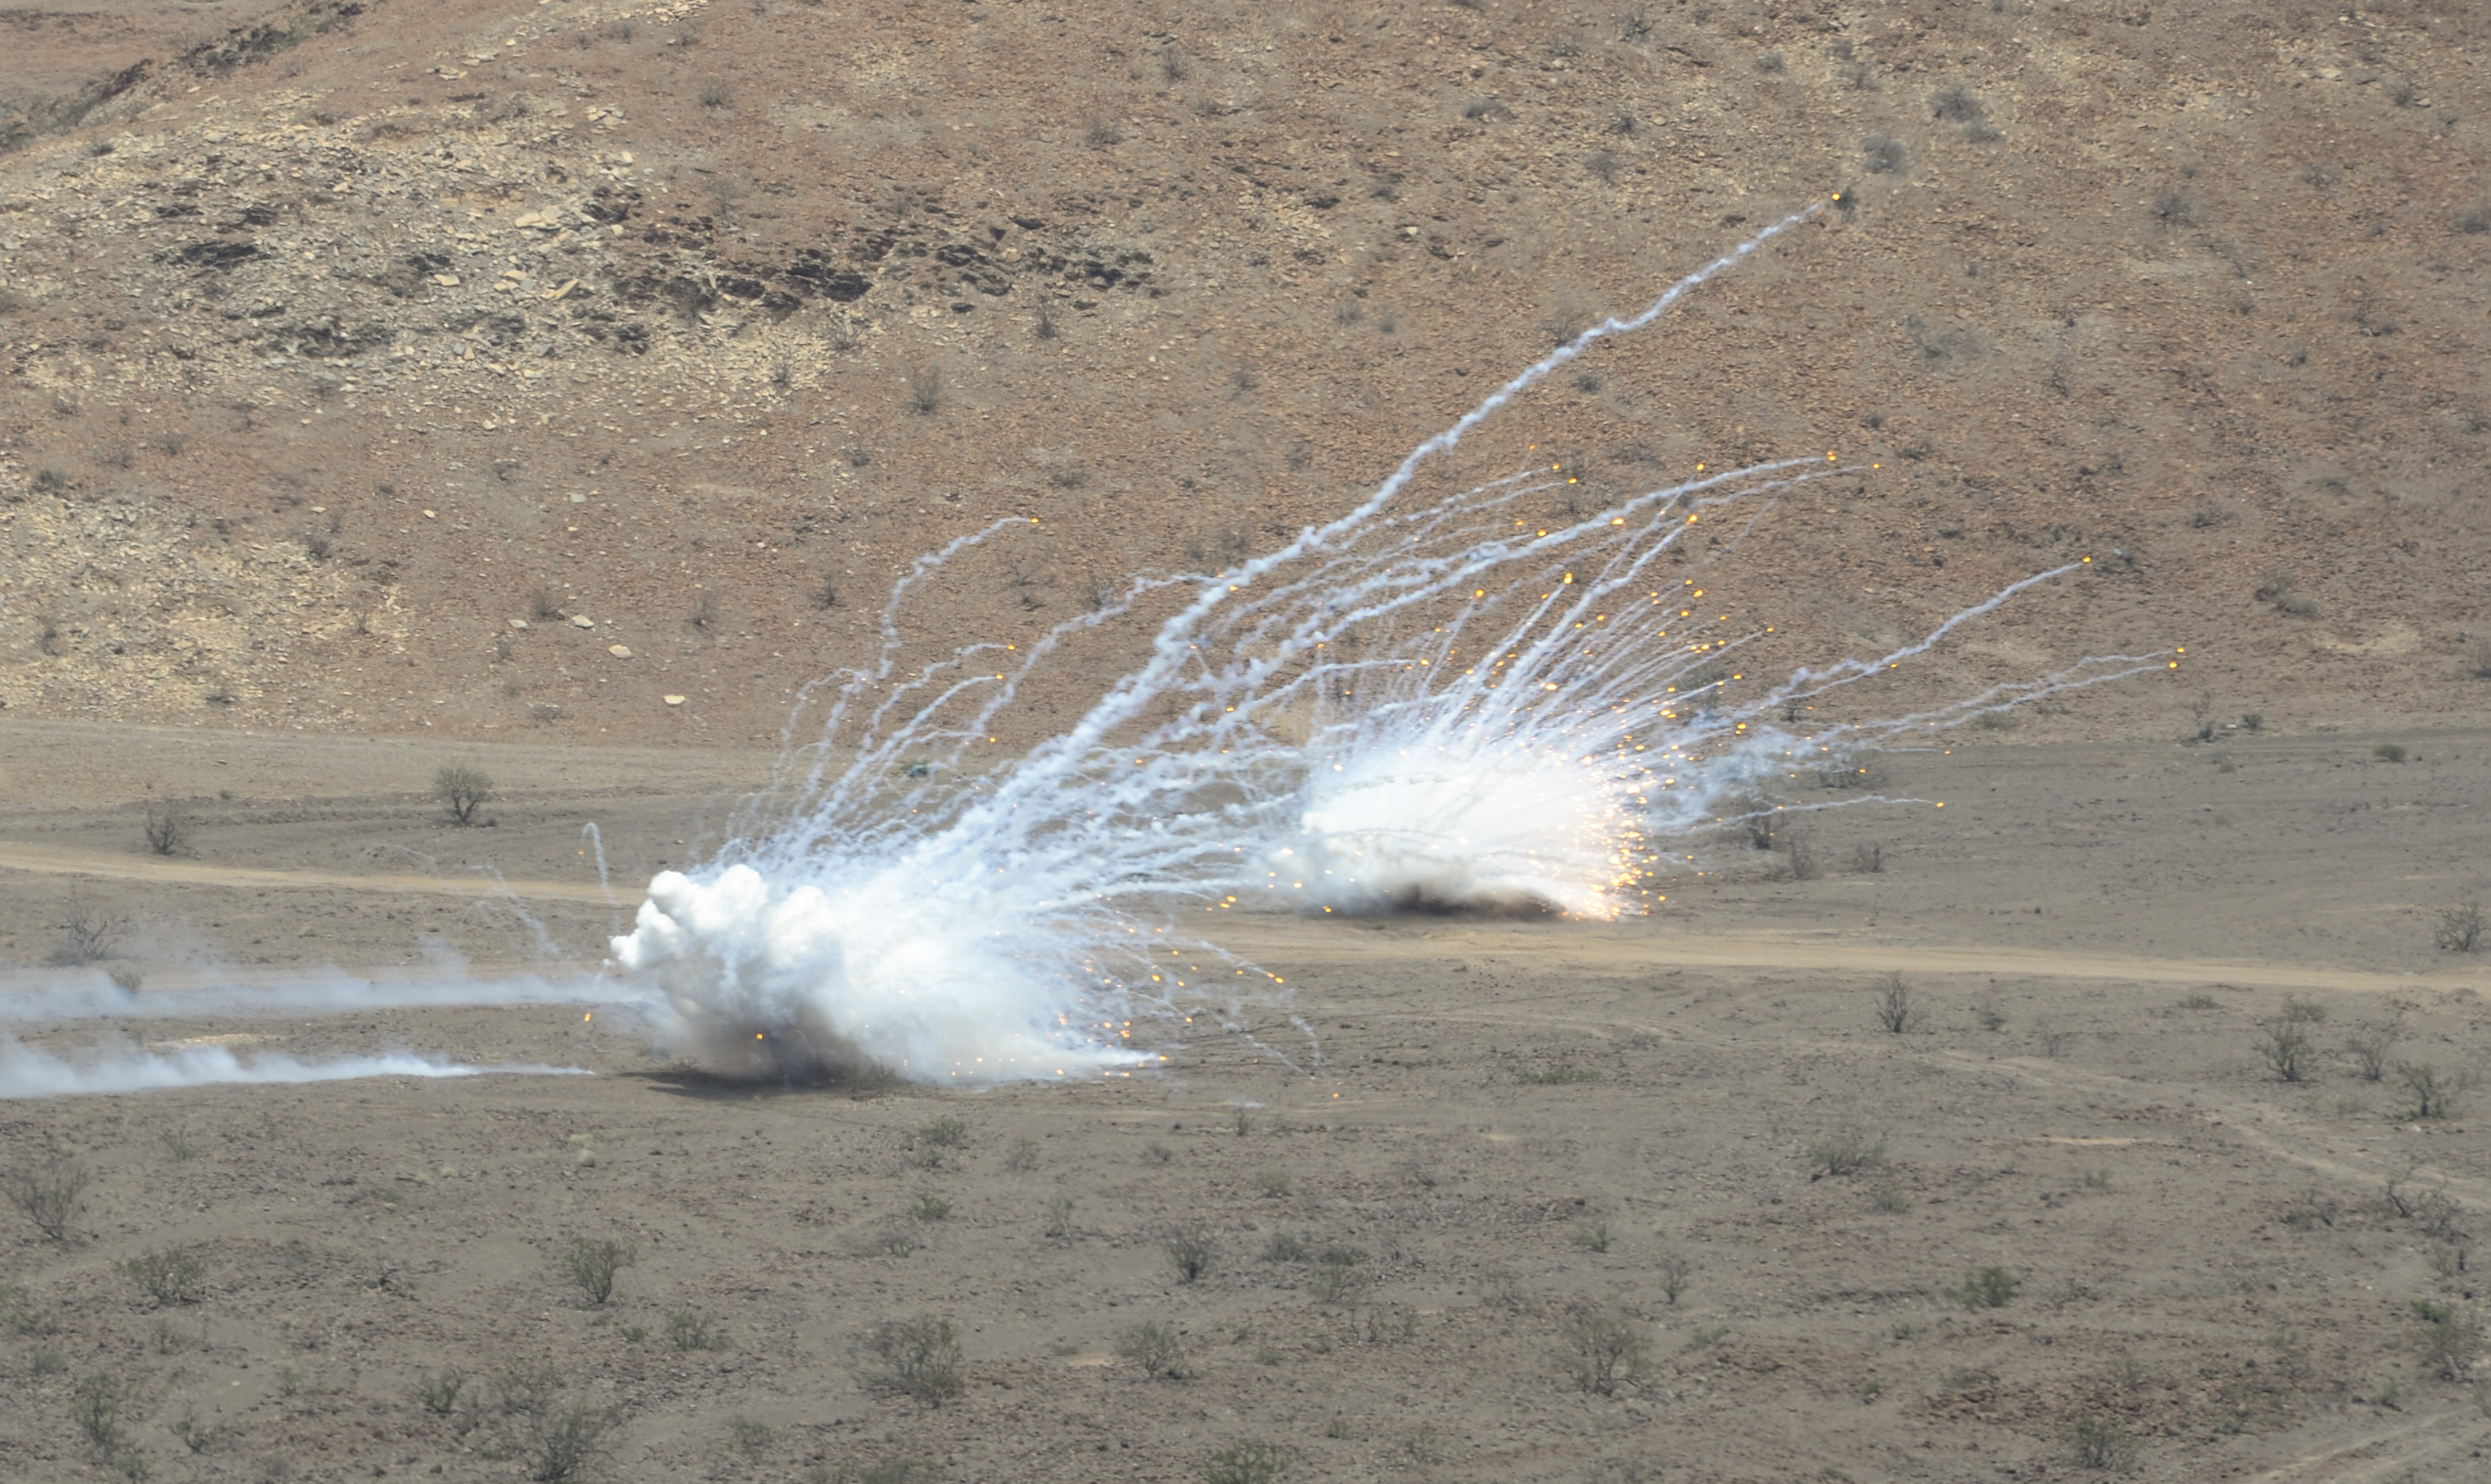 U.S. Marine artillery bombards a simulated target during Exercise Alligator Dagger at Arta Range, Djibouti, April 9, 2017. Exercise Alligator Dagger provides opportunities for the 24th Marine Expeditionary Unit to maintain their respective skills and proficiencies while intermittently participating in bilateral training with other services. Recurring training opportunities such as Alligator Dagger support the professional development of U.S. forces. (U.S. Air National Guard photo by Staff Sgt. Christian Jadot)